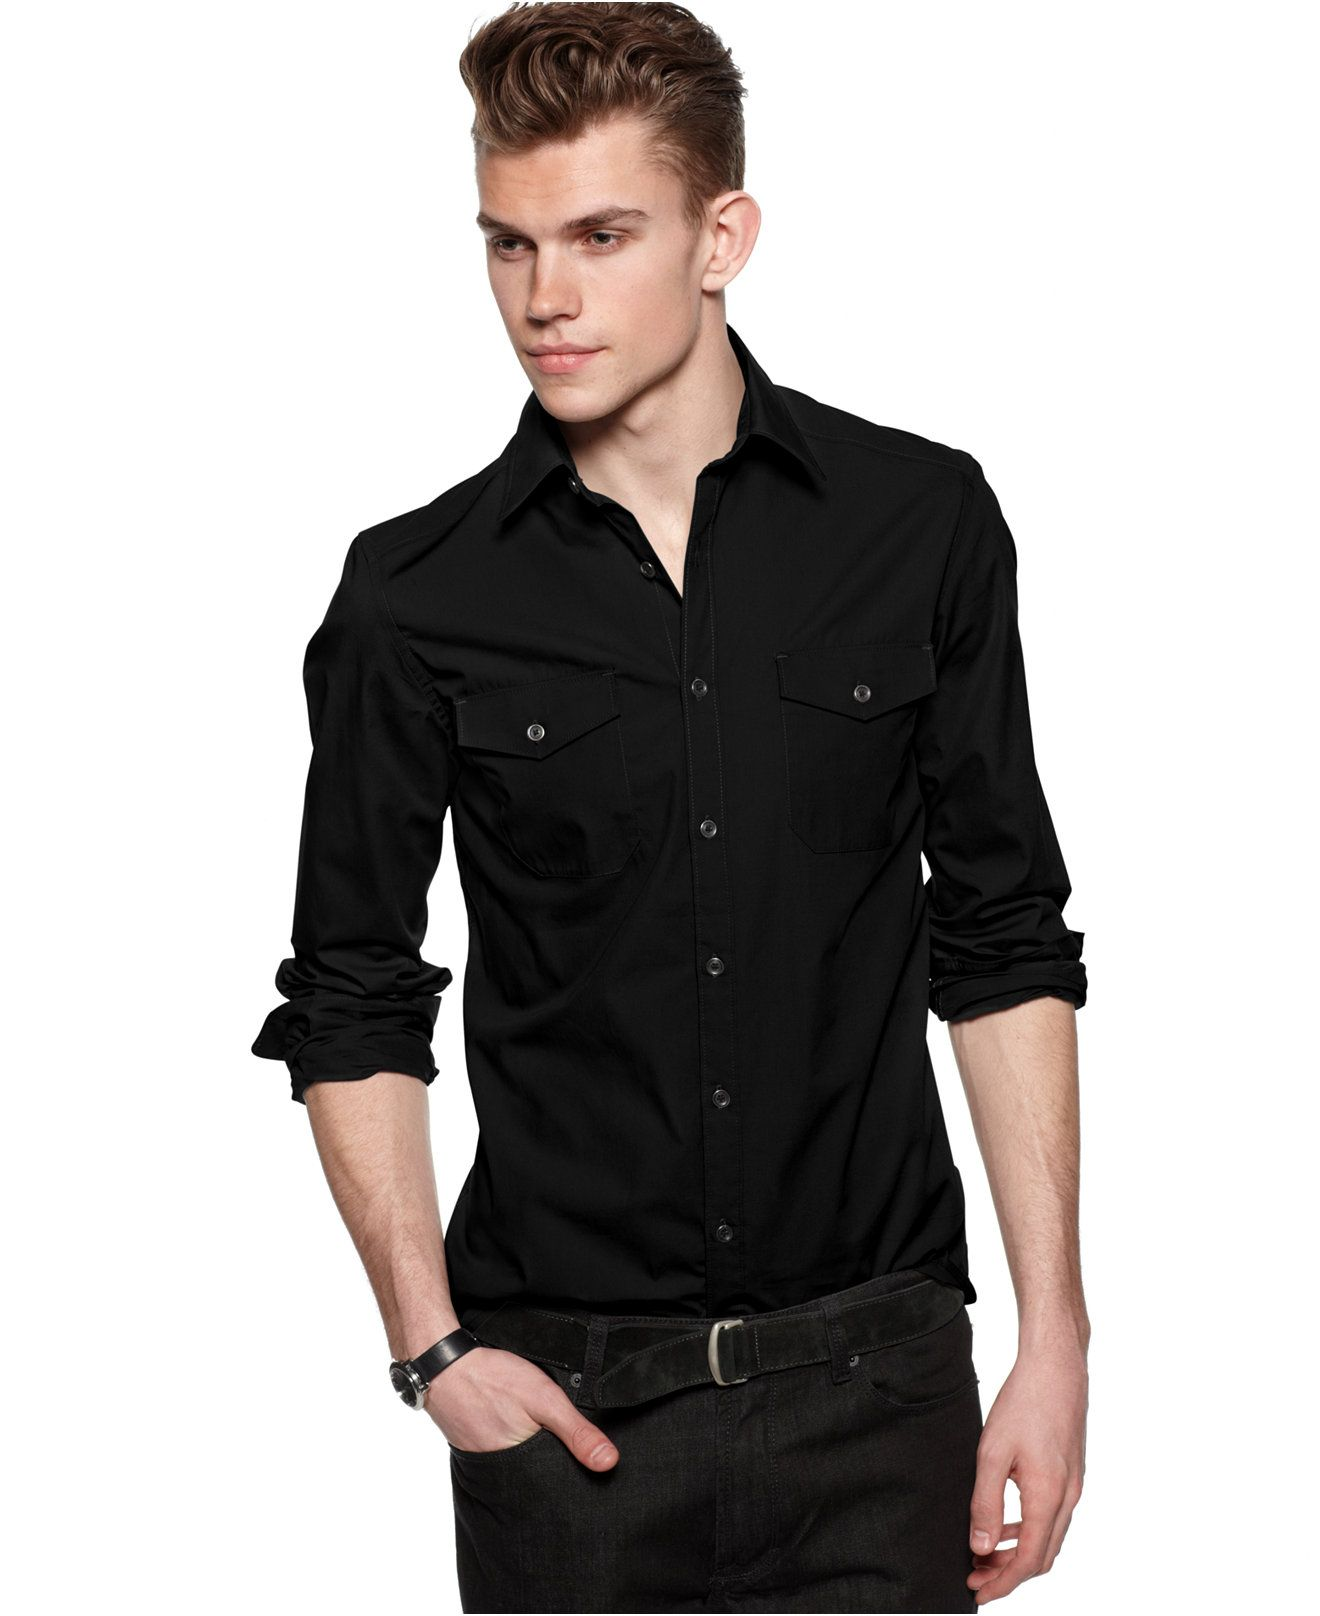 f5e077c8f81 Kenneth Cole Reaction Shirt